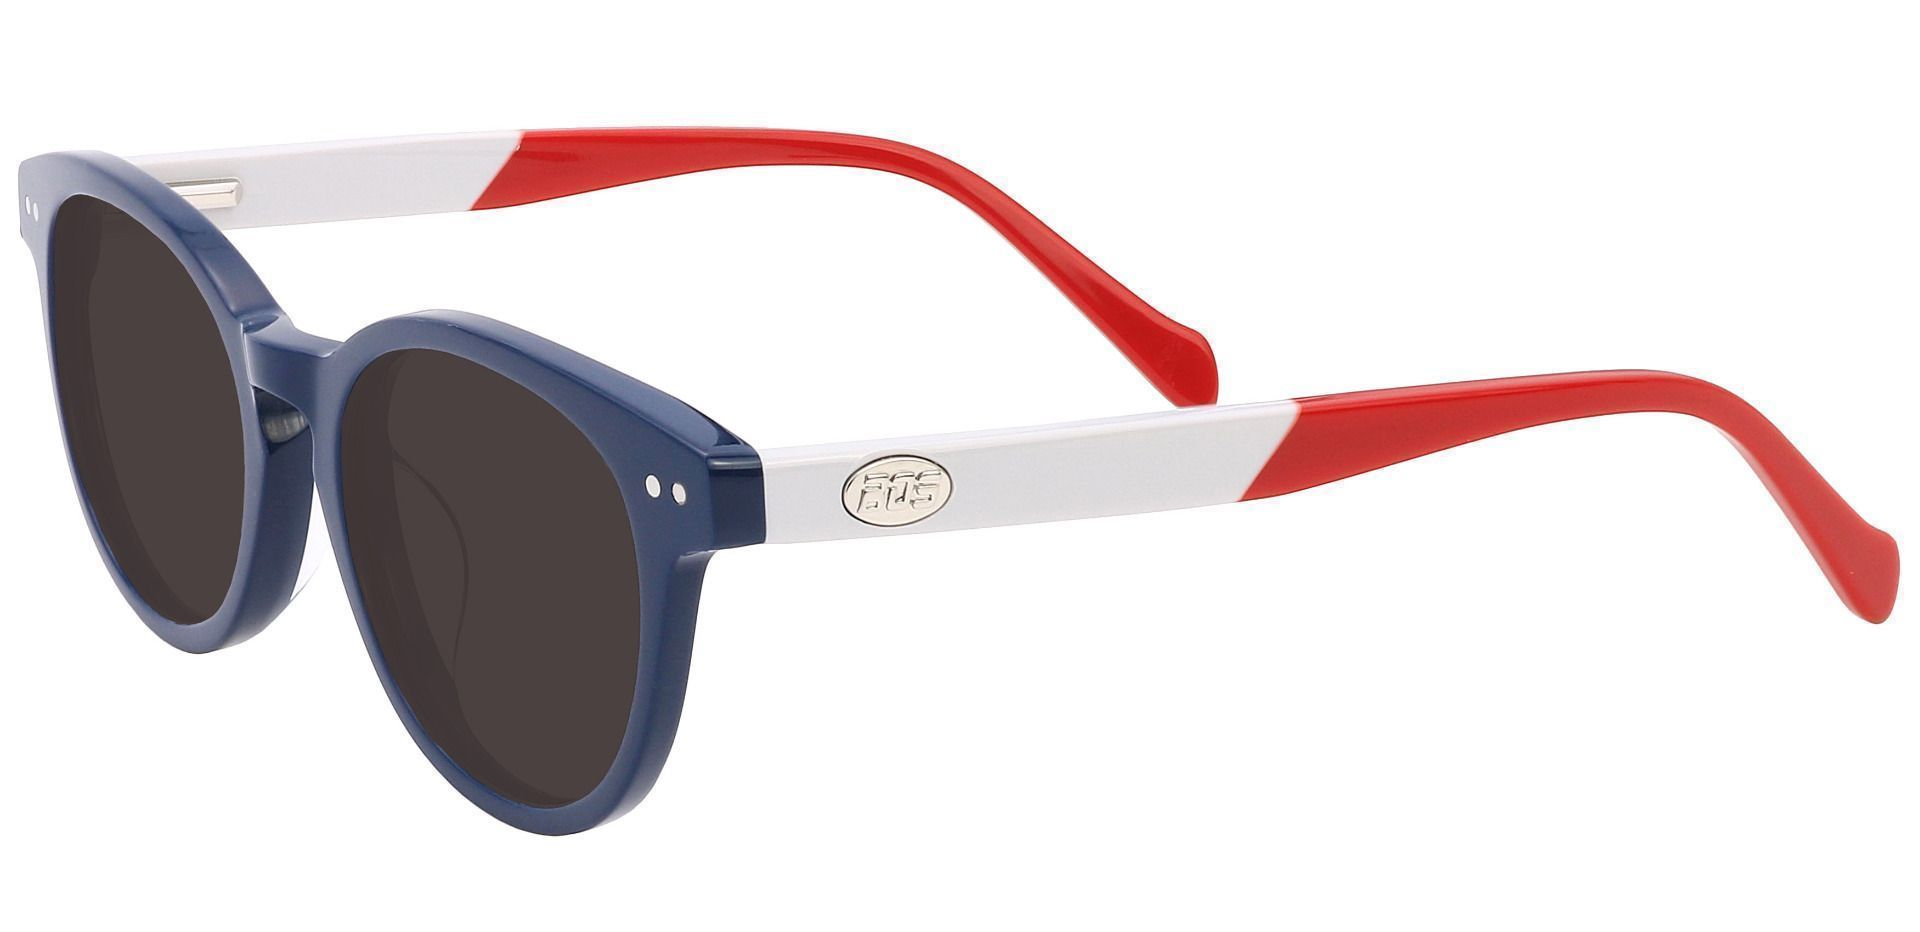 Revere Oval Non-Rx Sunglasses - Blue Frame With Gray Lenses